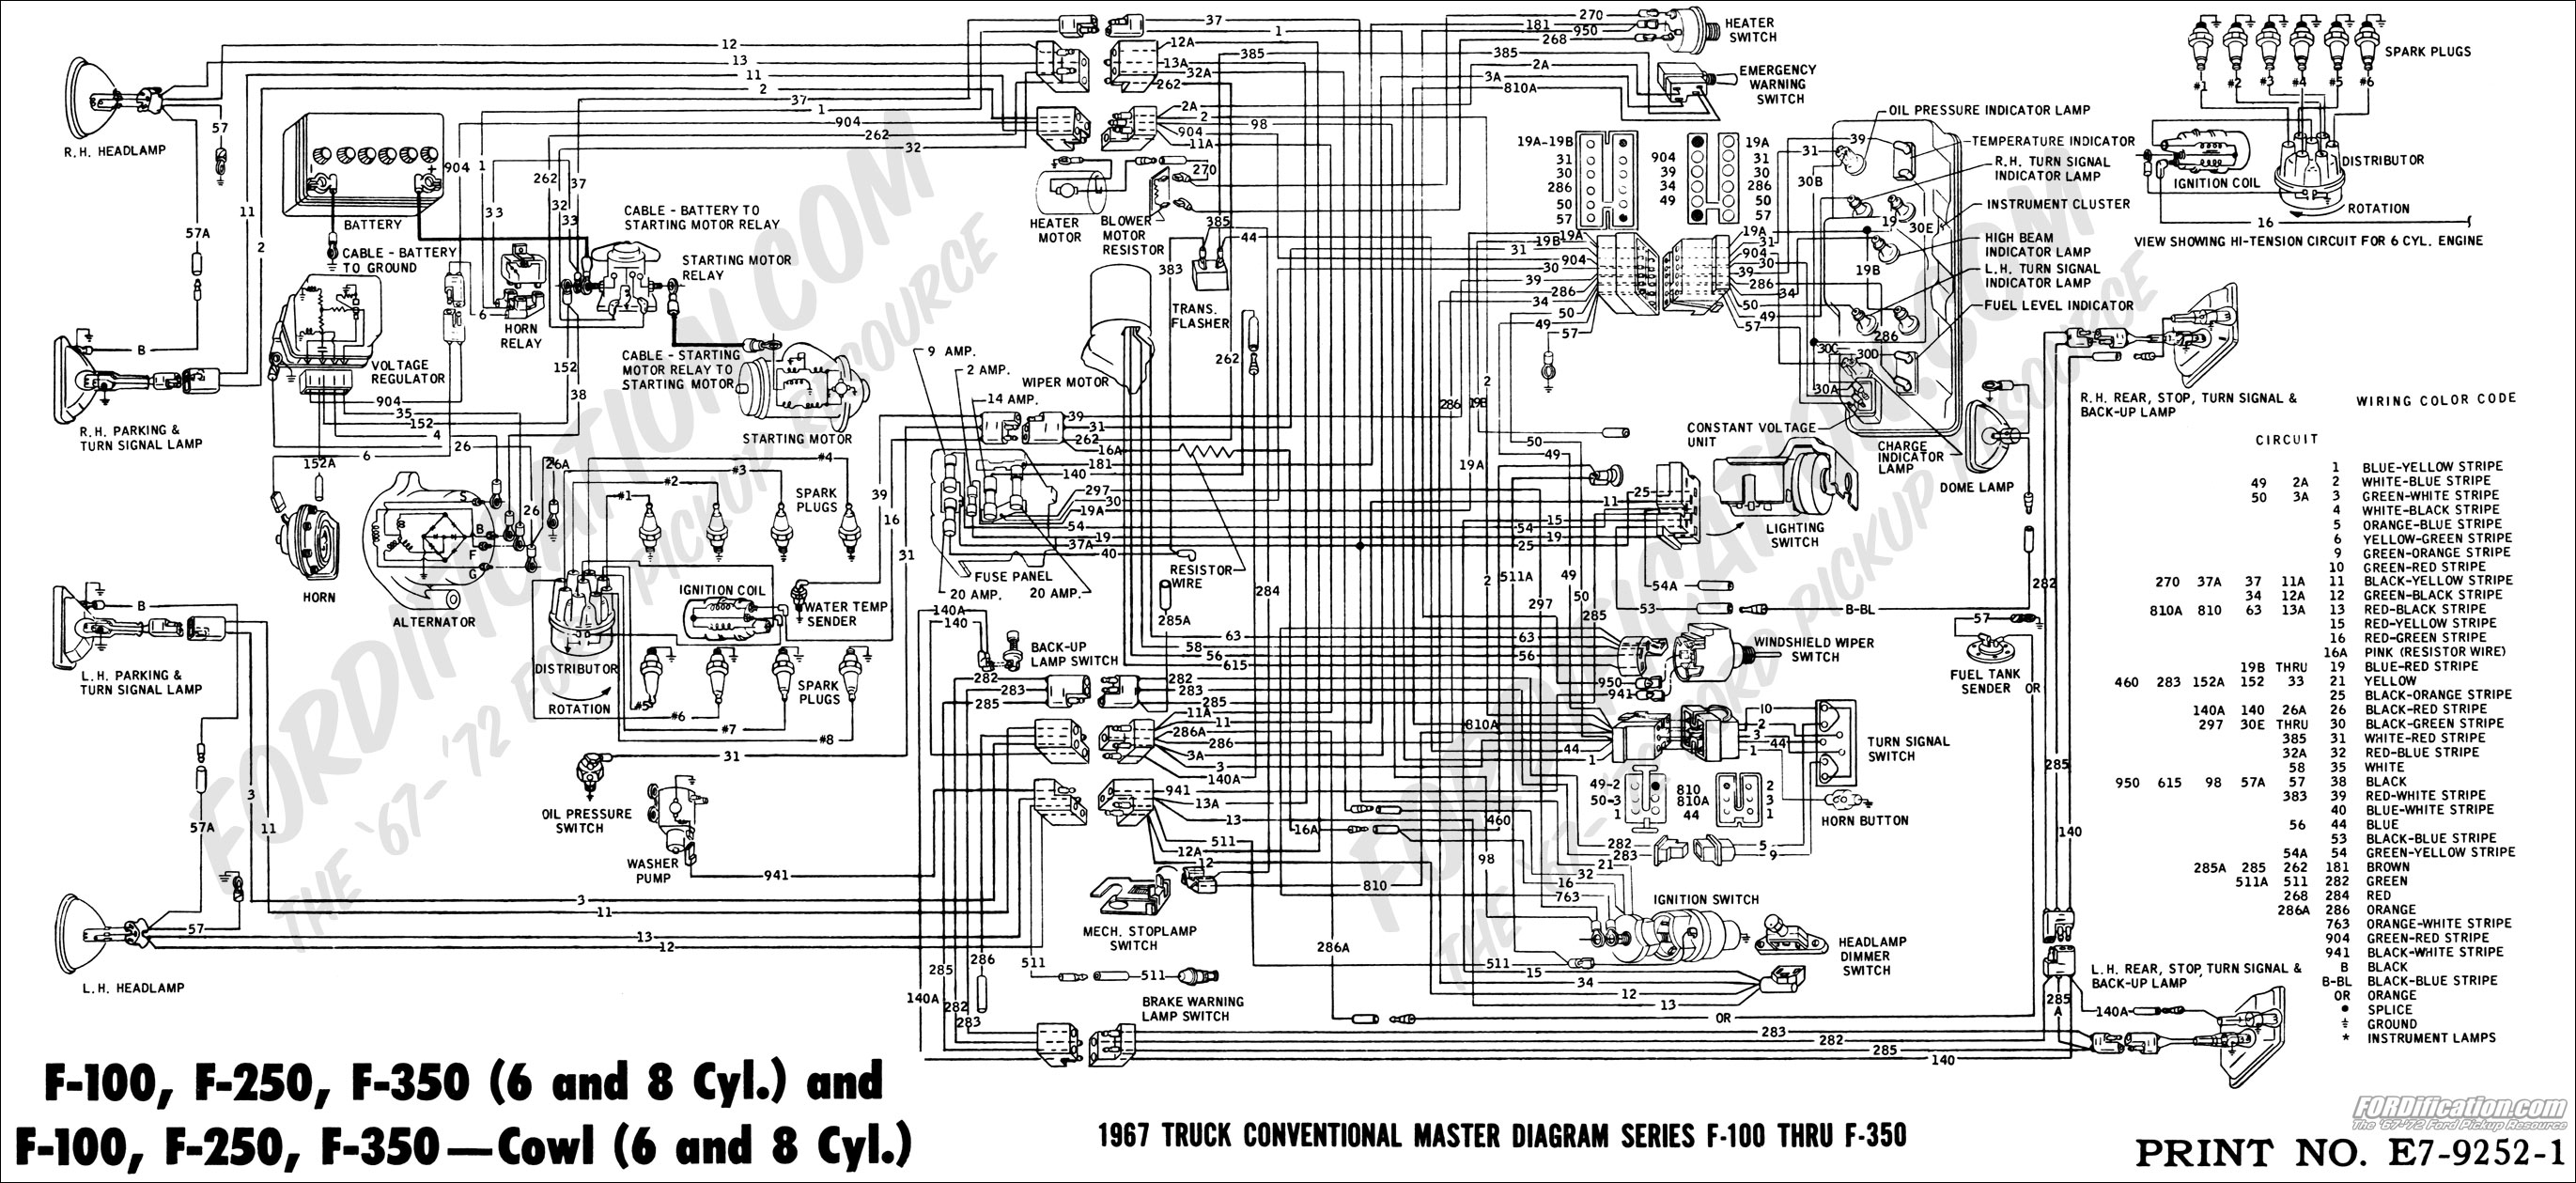 Ford Econoline Wiring Diagrams on buick regal wiring-diagram, ford f 450 wiring schematic, ford e-350 parts diagram, acura tl wiring-diagram, cadillac deville wiring-diagram, subaru outback wiring-diagram, ford e-350 fuse box diagram, ford 7 pin trailer wiring diagram, ford alternator wiring diagram, bmw x3 wiring-diagram, jeep patriot wiring-diagram, ford truck wiring diagrams, ford electrical diagram, ford super duty wiring diagram, 2004 chrysler sebring wiring-diagram, ford flex wiring diagram, ford aerostar wiring diagram, nissan quest wiring-diagram, ford radio wiring diagram, ford f-350 4x4 wiring diagrams,